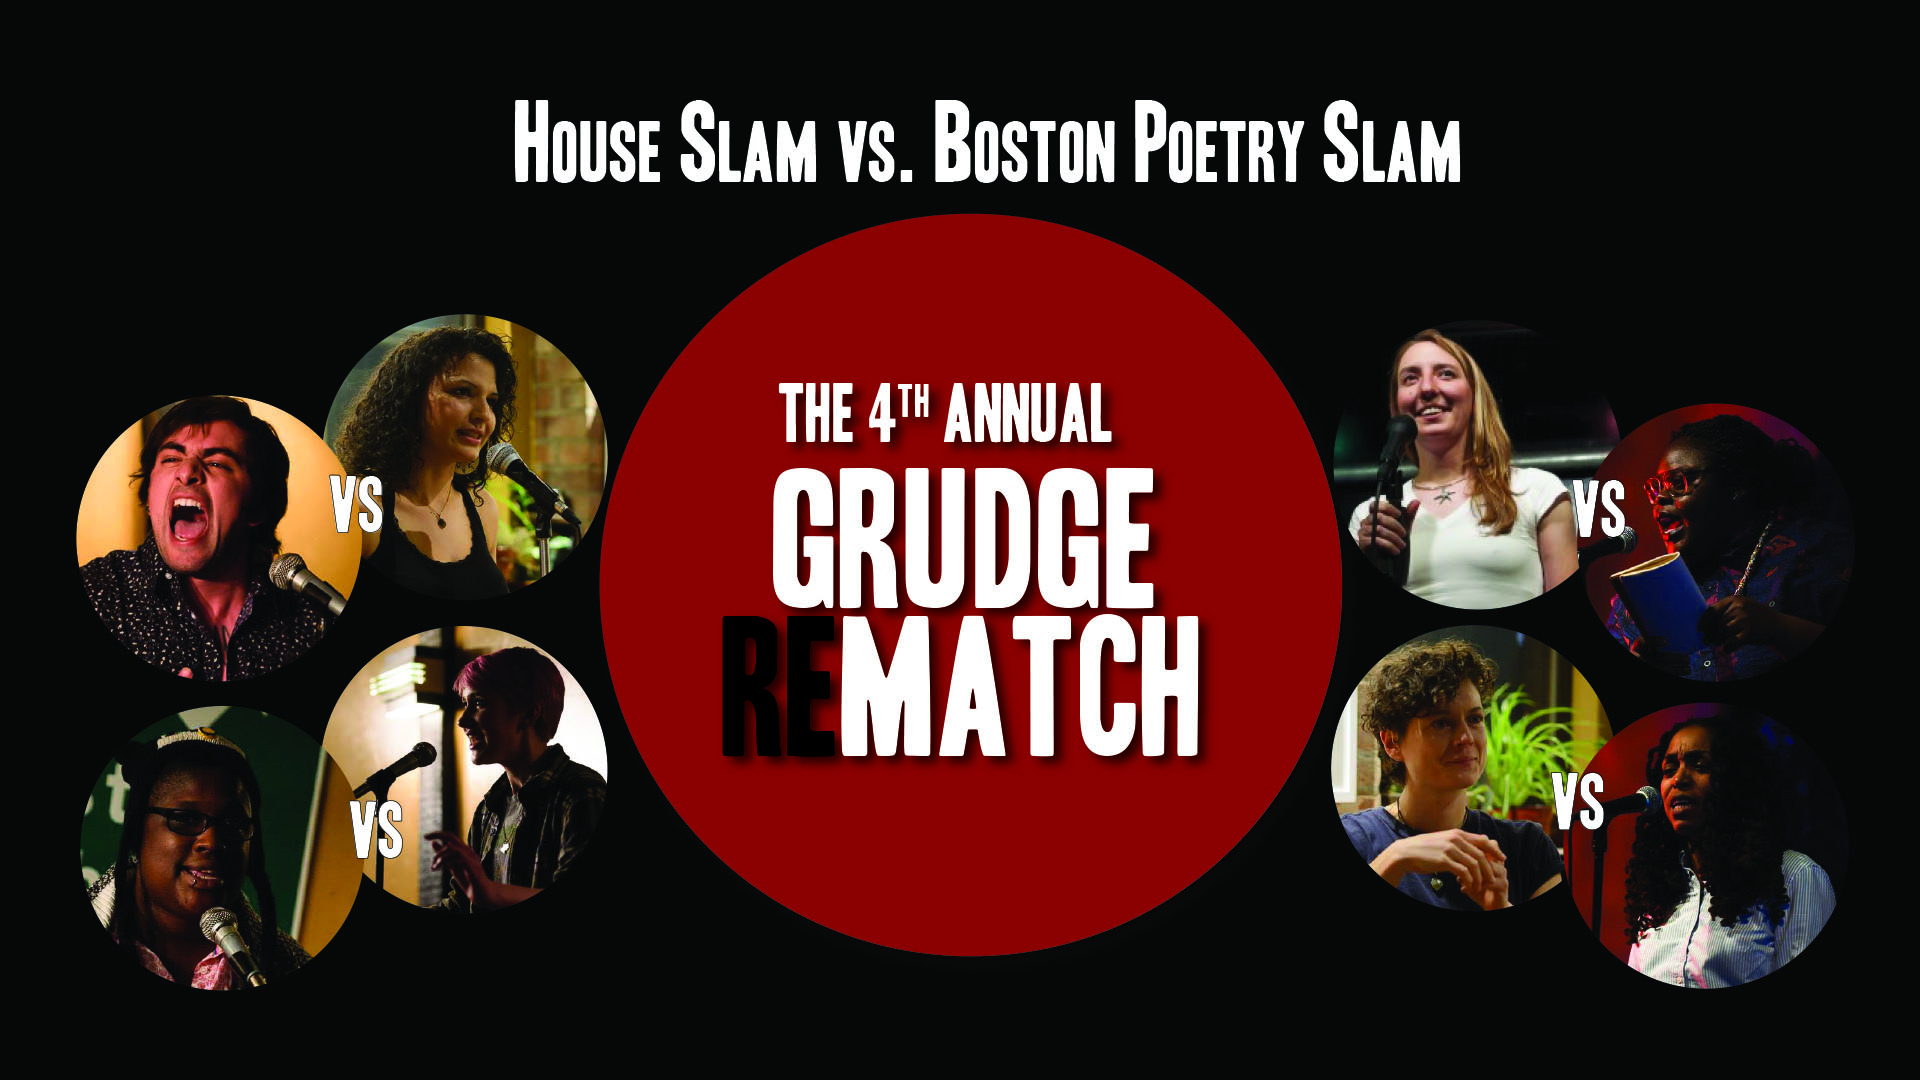 The Haley House vs. Boston Poetry Slam Grudge ReMatch! Banner by Meaghan Ford.